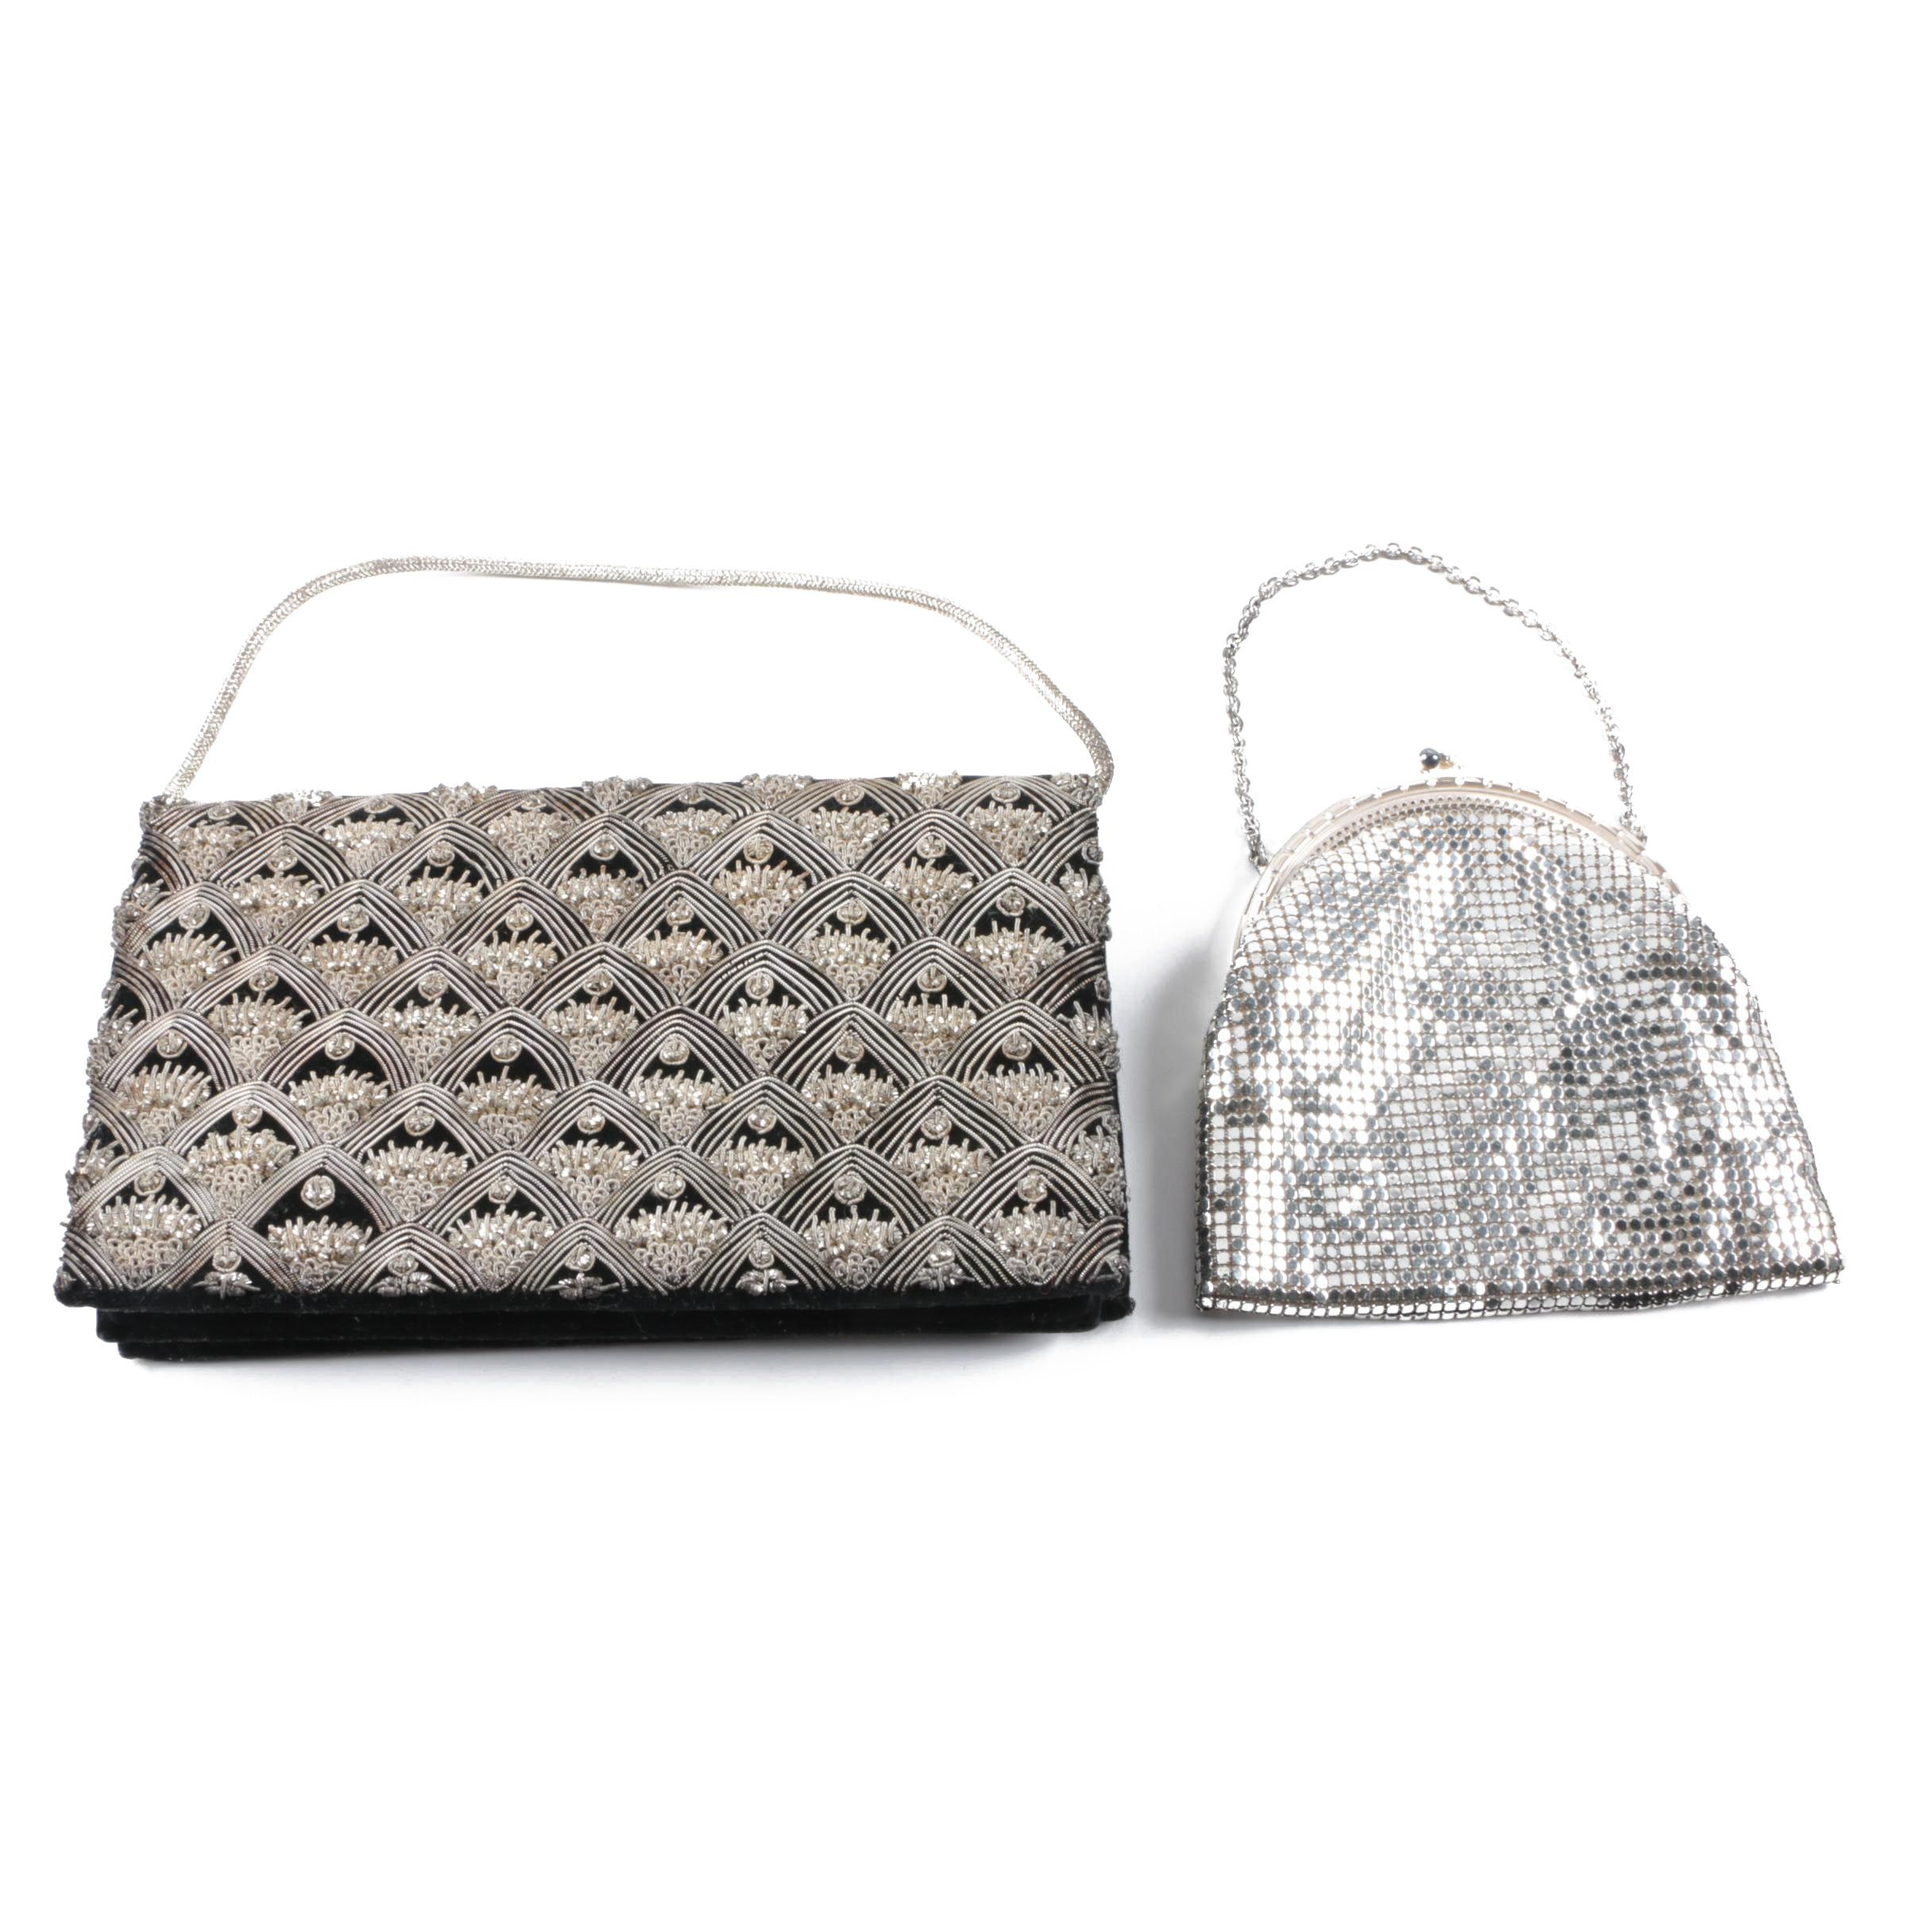 Vintage Evening Handbags Inclduing Metallic Mesh